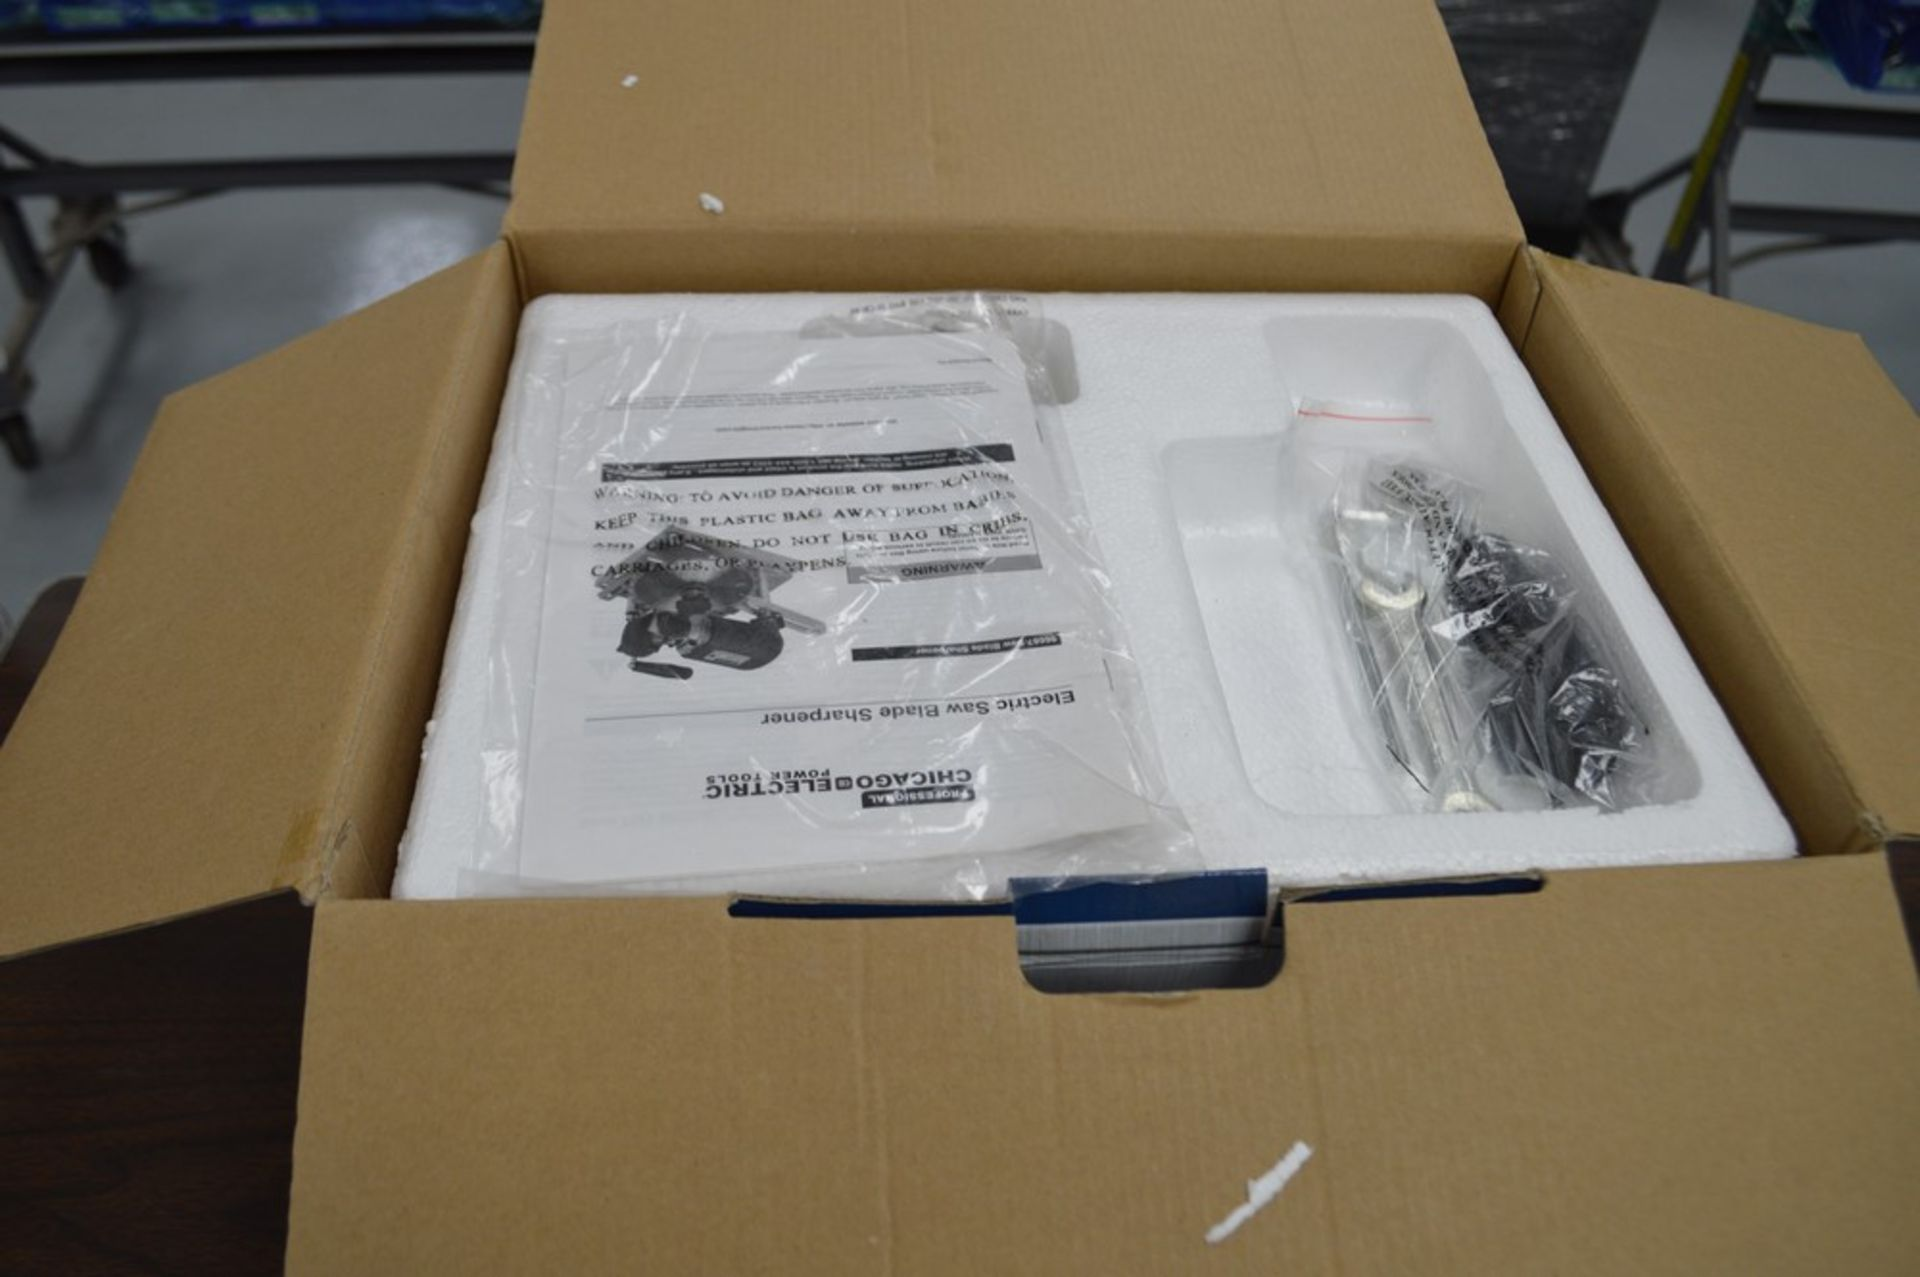 Chicago Electric 120v circular saw blade sharpner, appears new in the box - Image 3 of 4